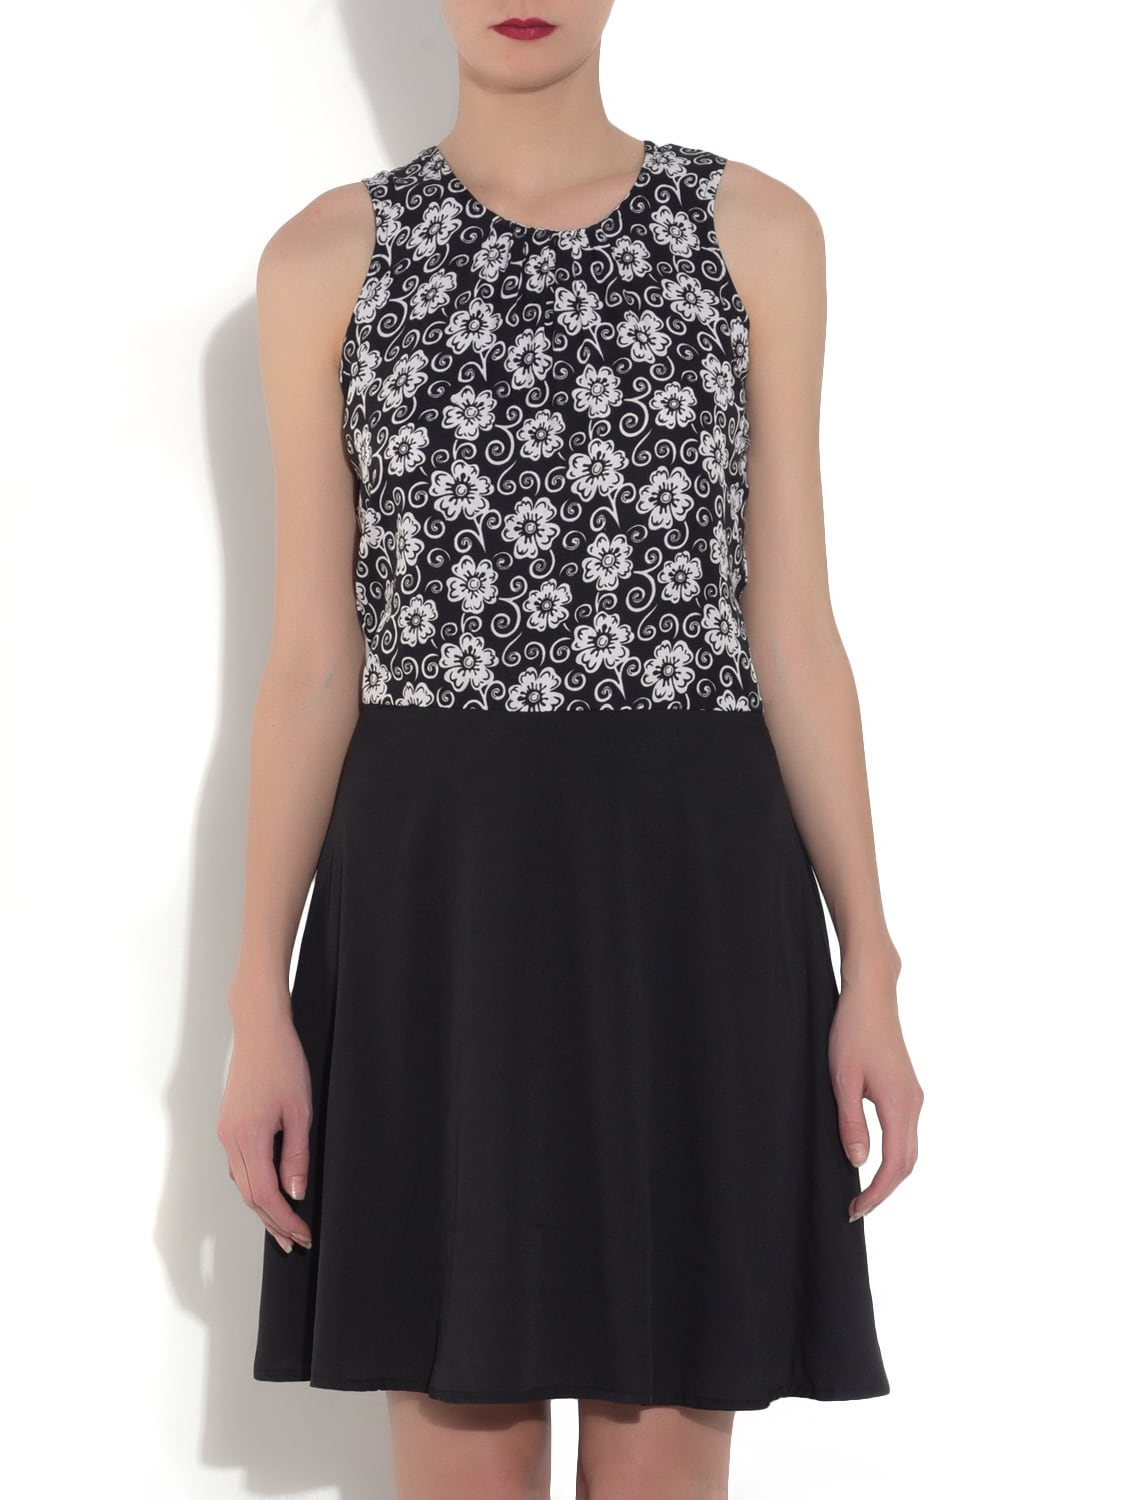 ca3d8f806857b3 ... Black Floral Printed Sleeveless A-Line Dress - 9553152 - Zoom Image - 1